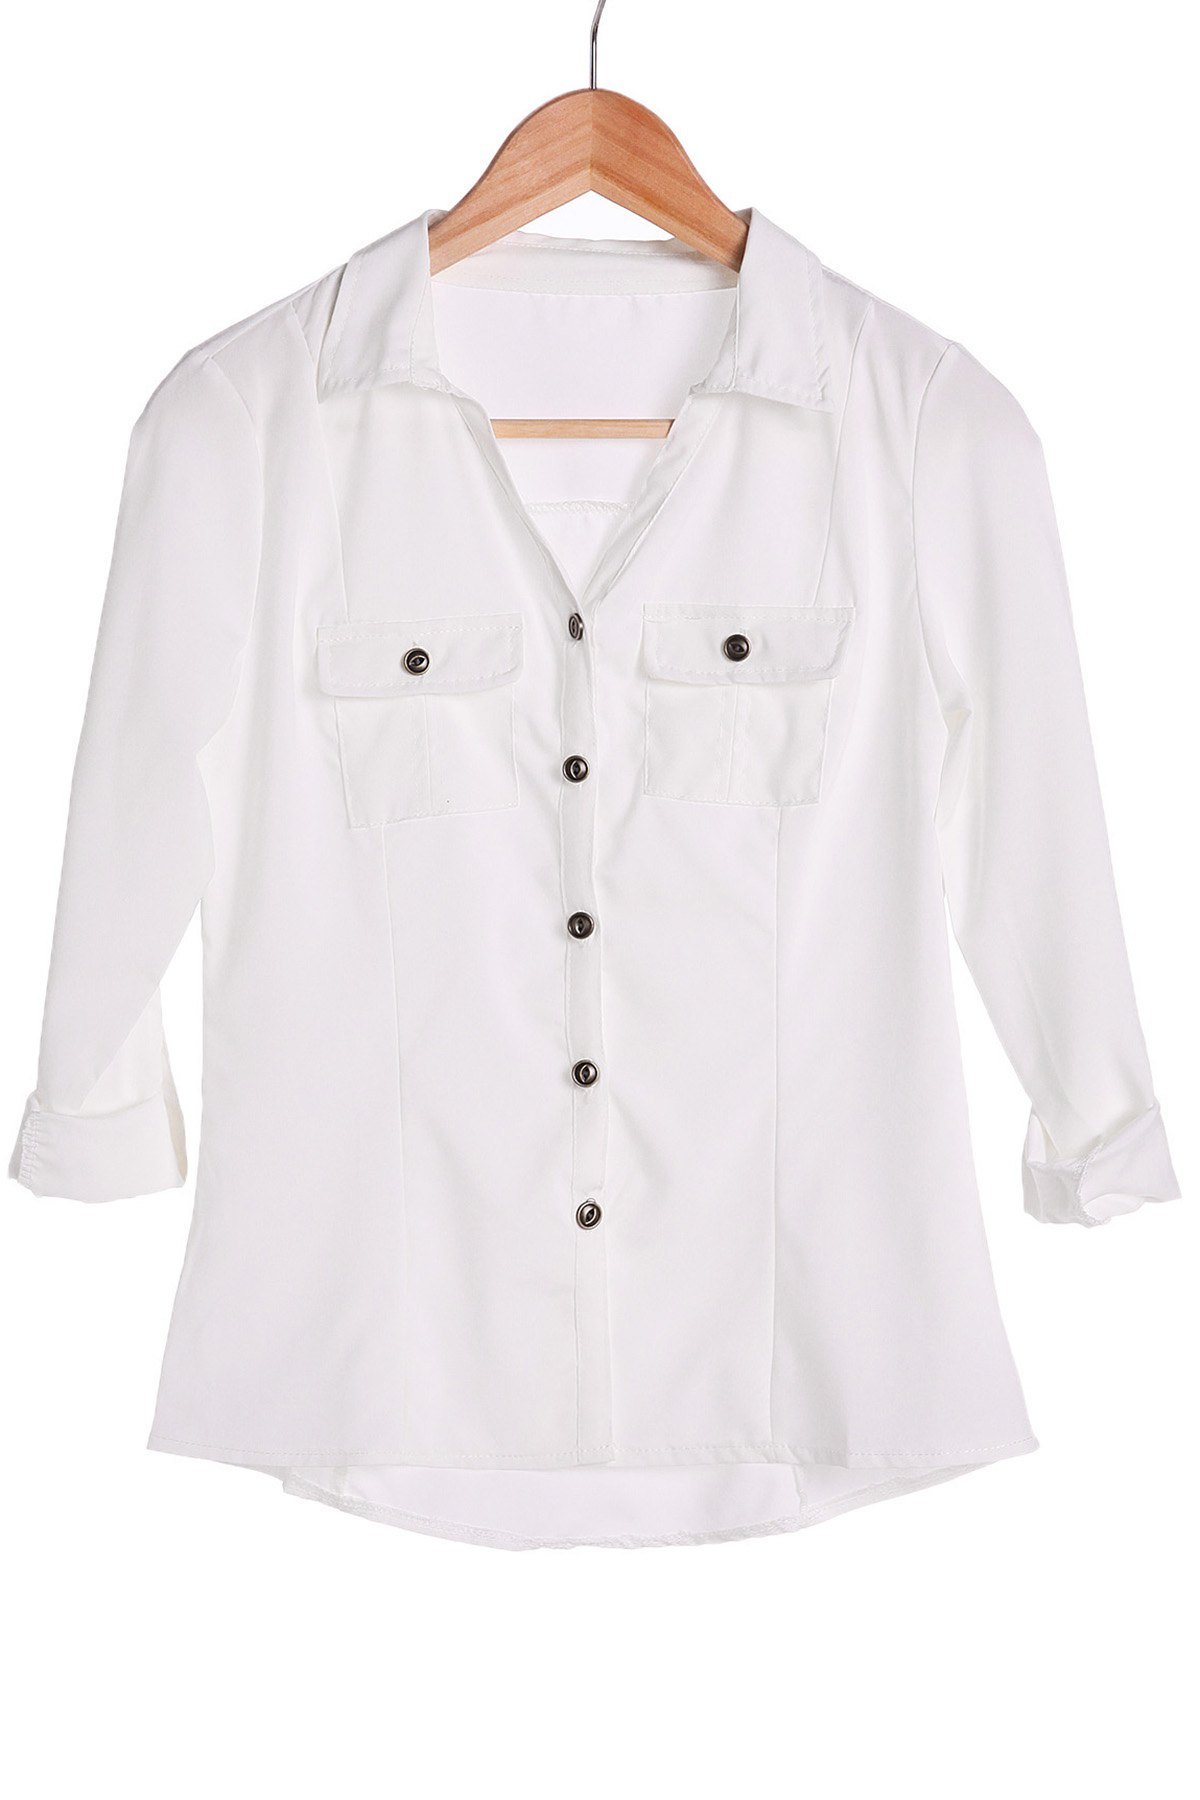 Stylish Turn-Down Collar White Single-Breasted Long Sleeve Women's Blouse